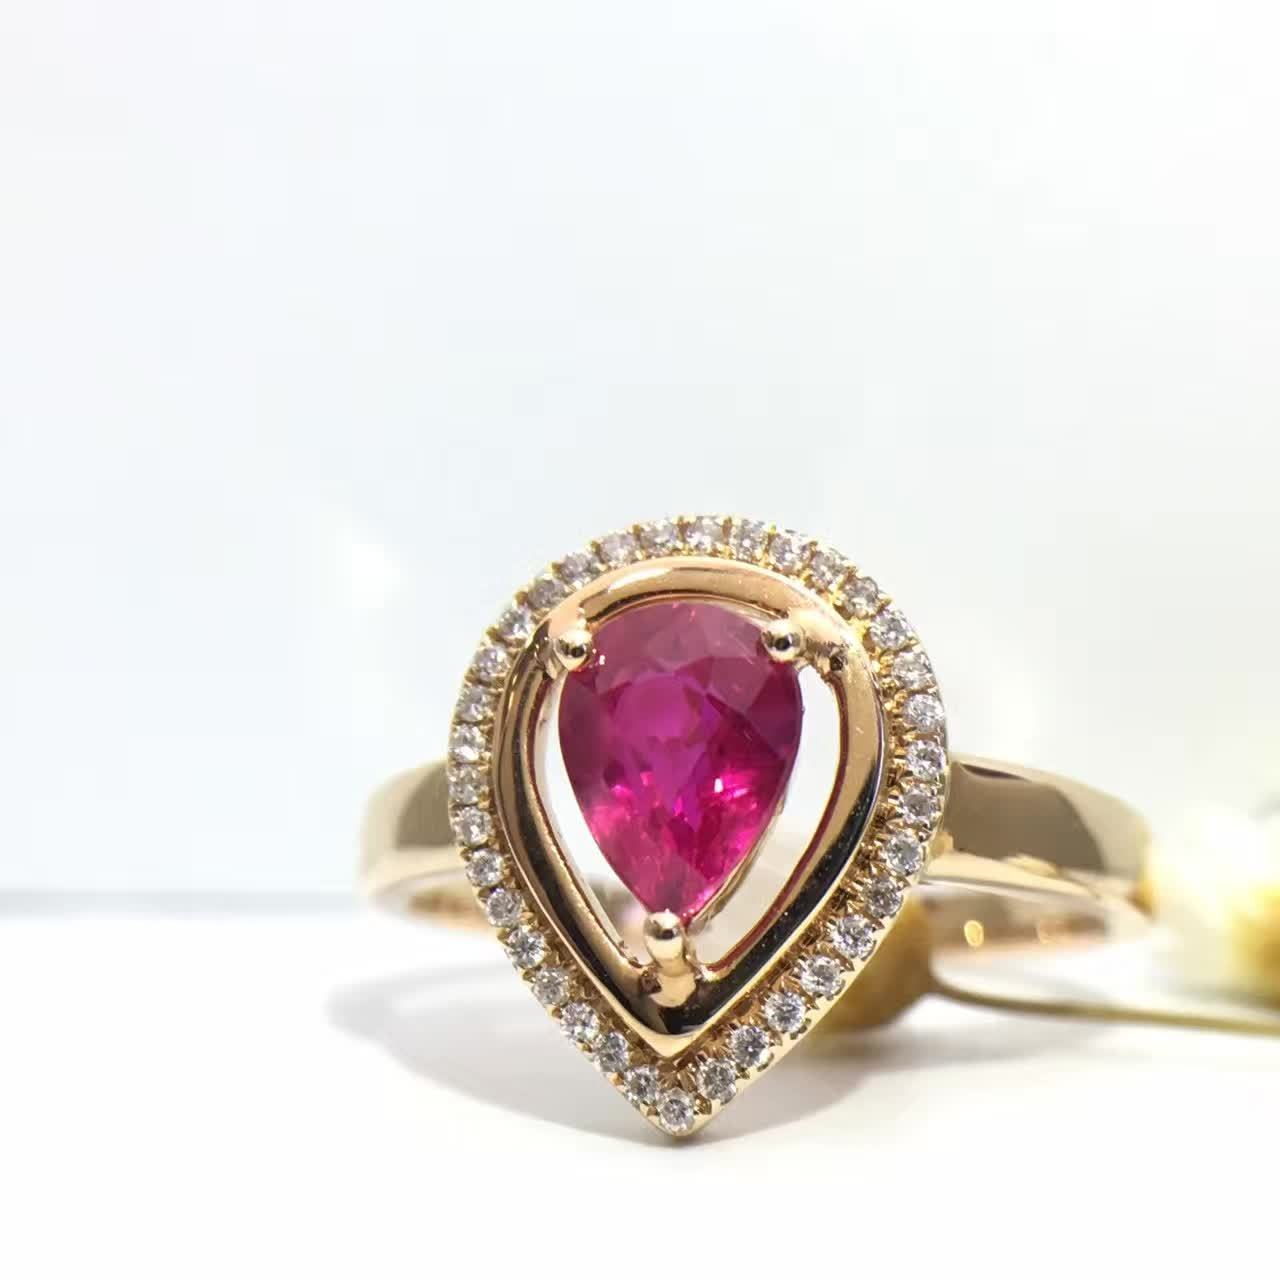 0.982ct +0.099ct 18K Gold Natural Ruby Women Ring with Diamond Setting 2016 New Fine Jewelry Wedding Band Engagement